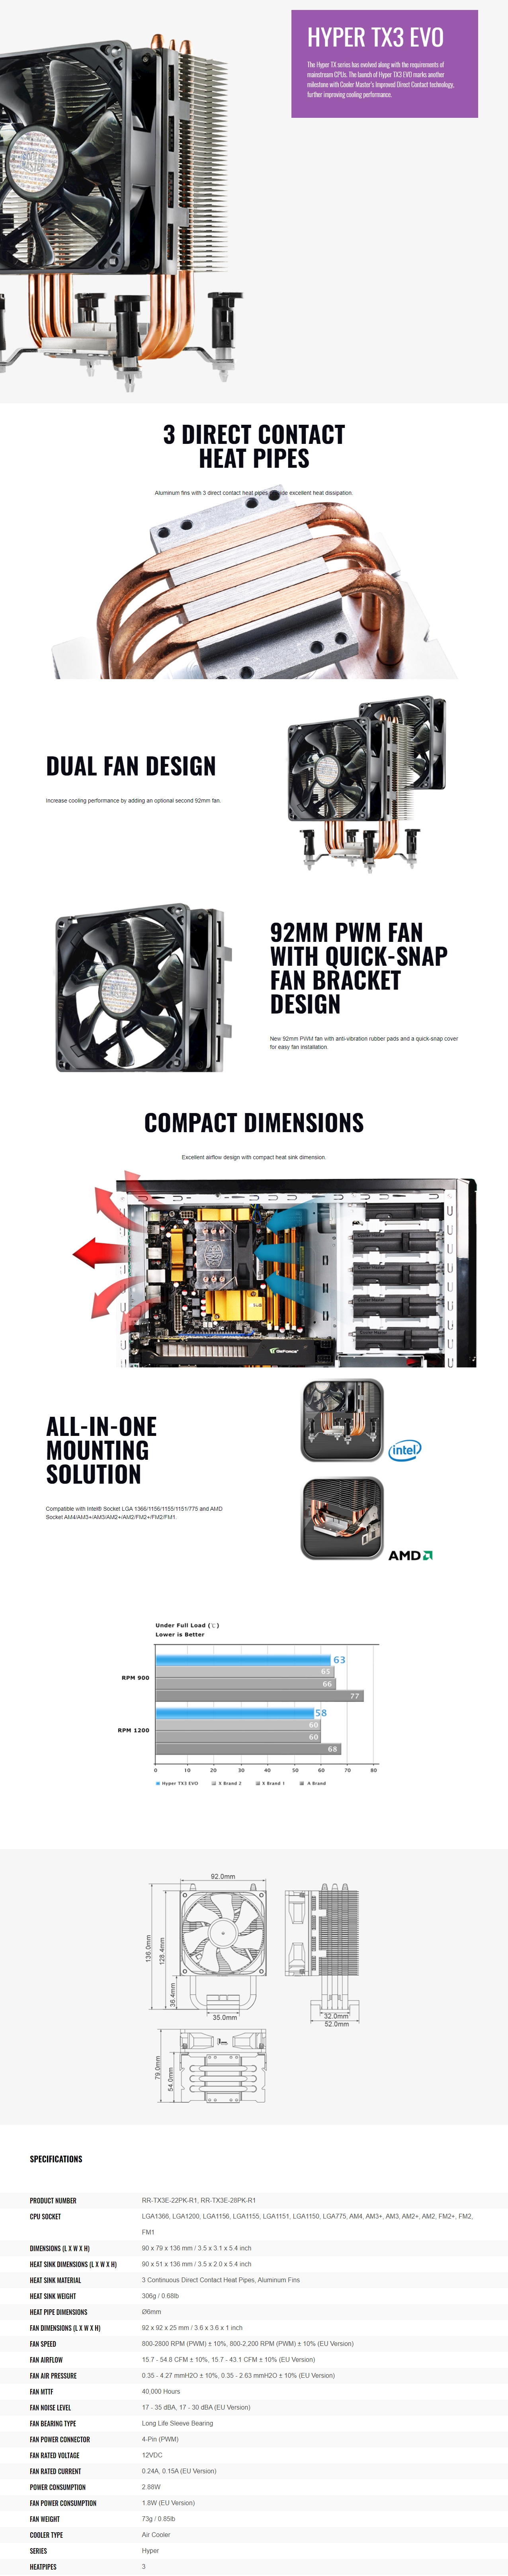 A large marketing image providing additional information about the product Cooler Master Hyper TX3 EVO CPU Cooler - Additional alt info not provided